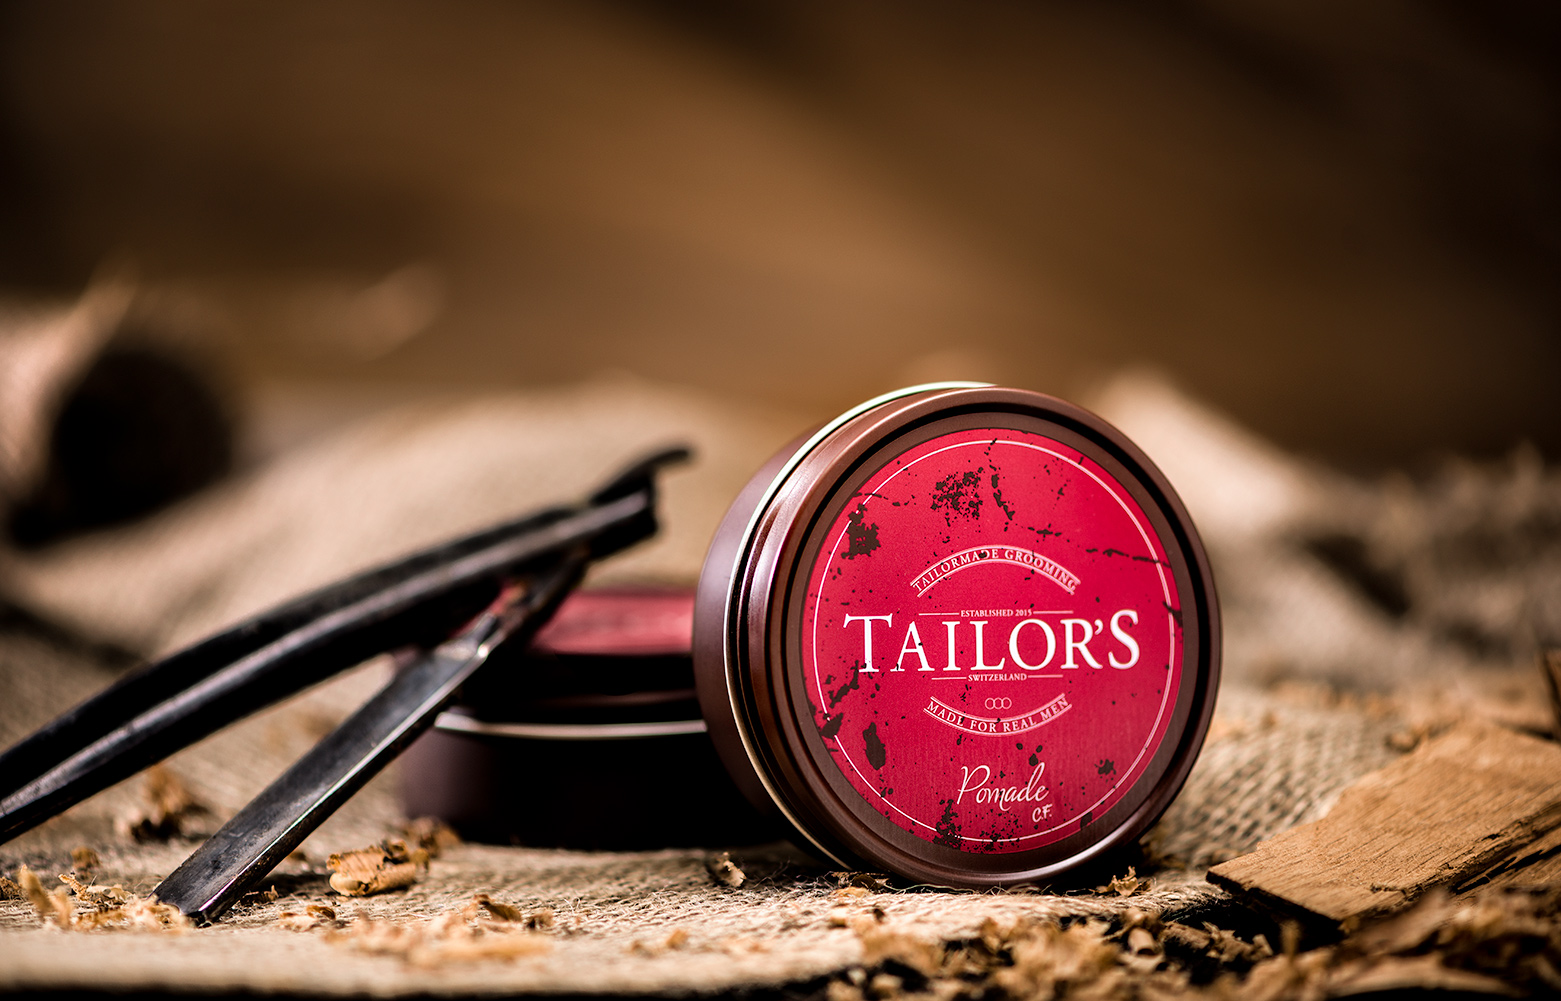 Tailor's-126